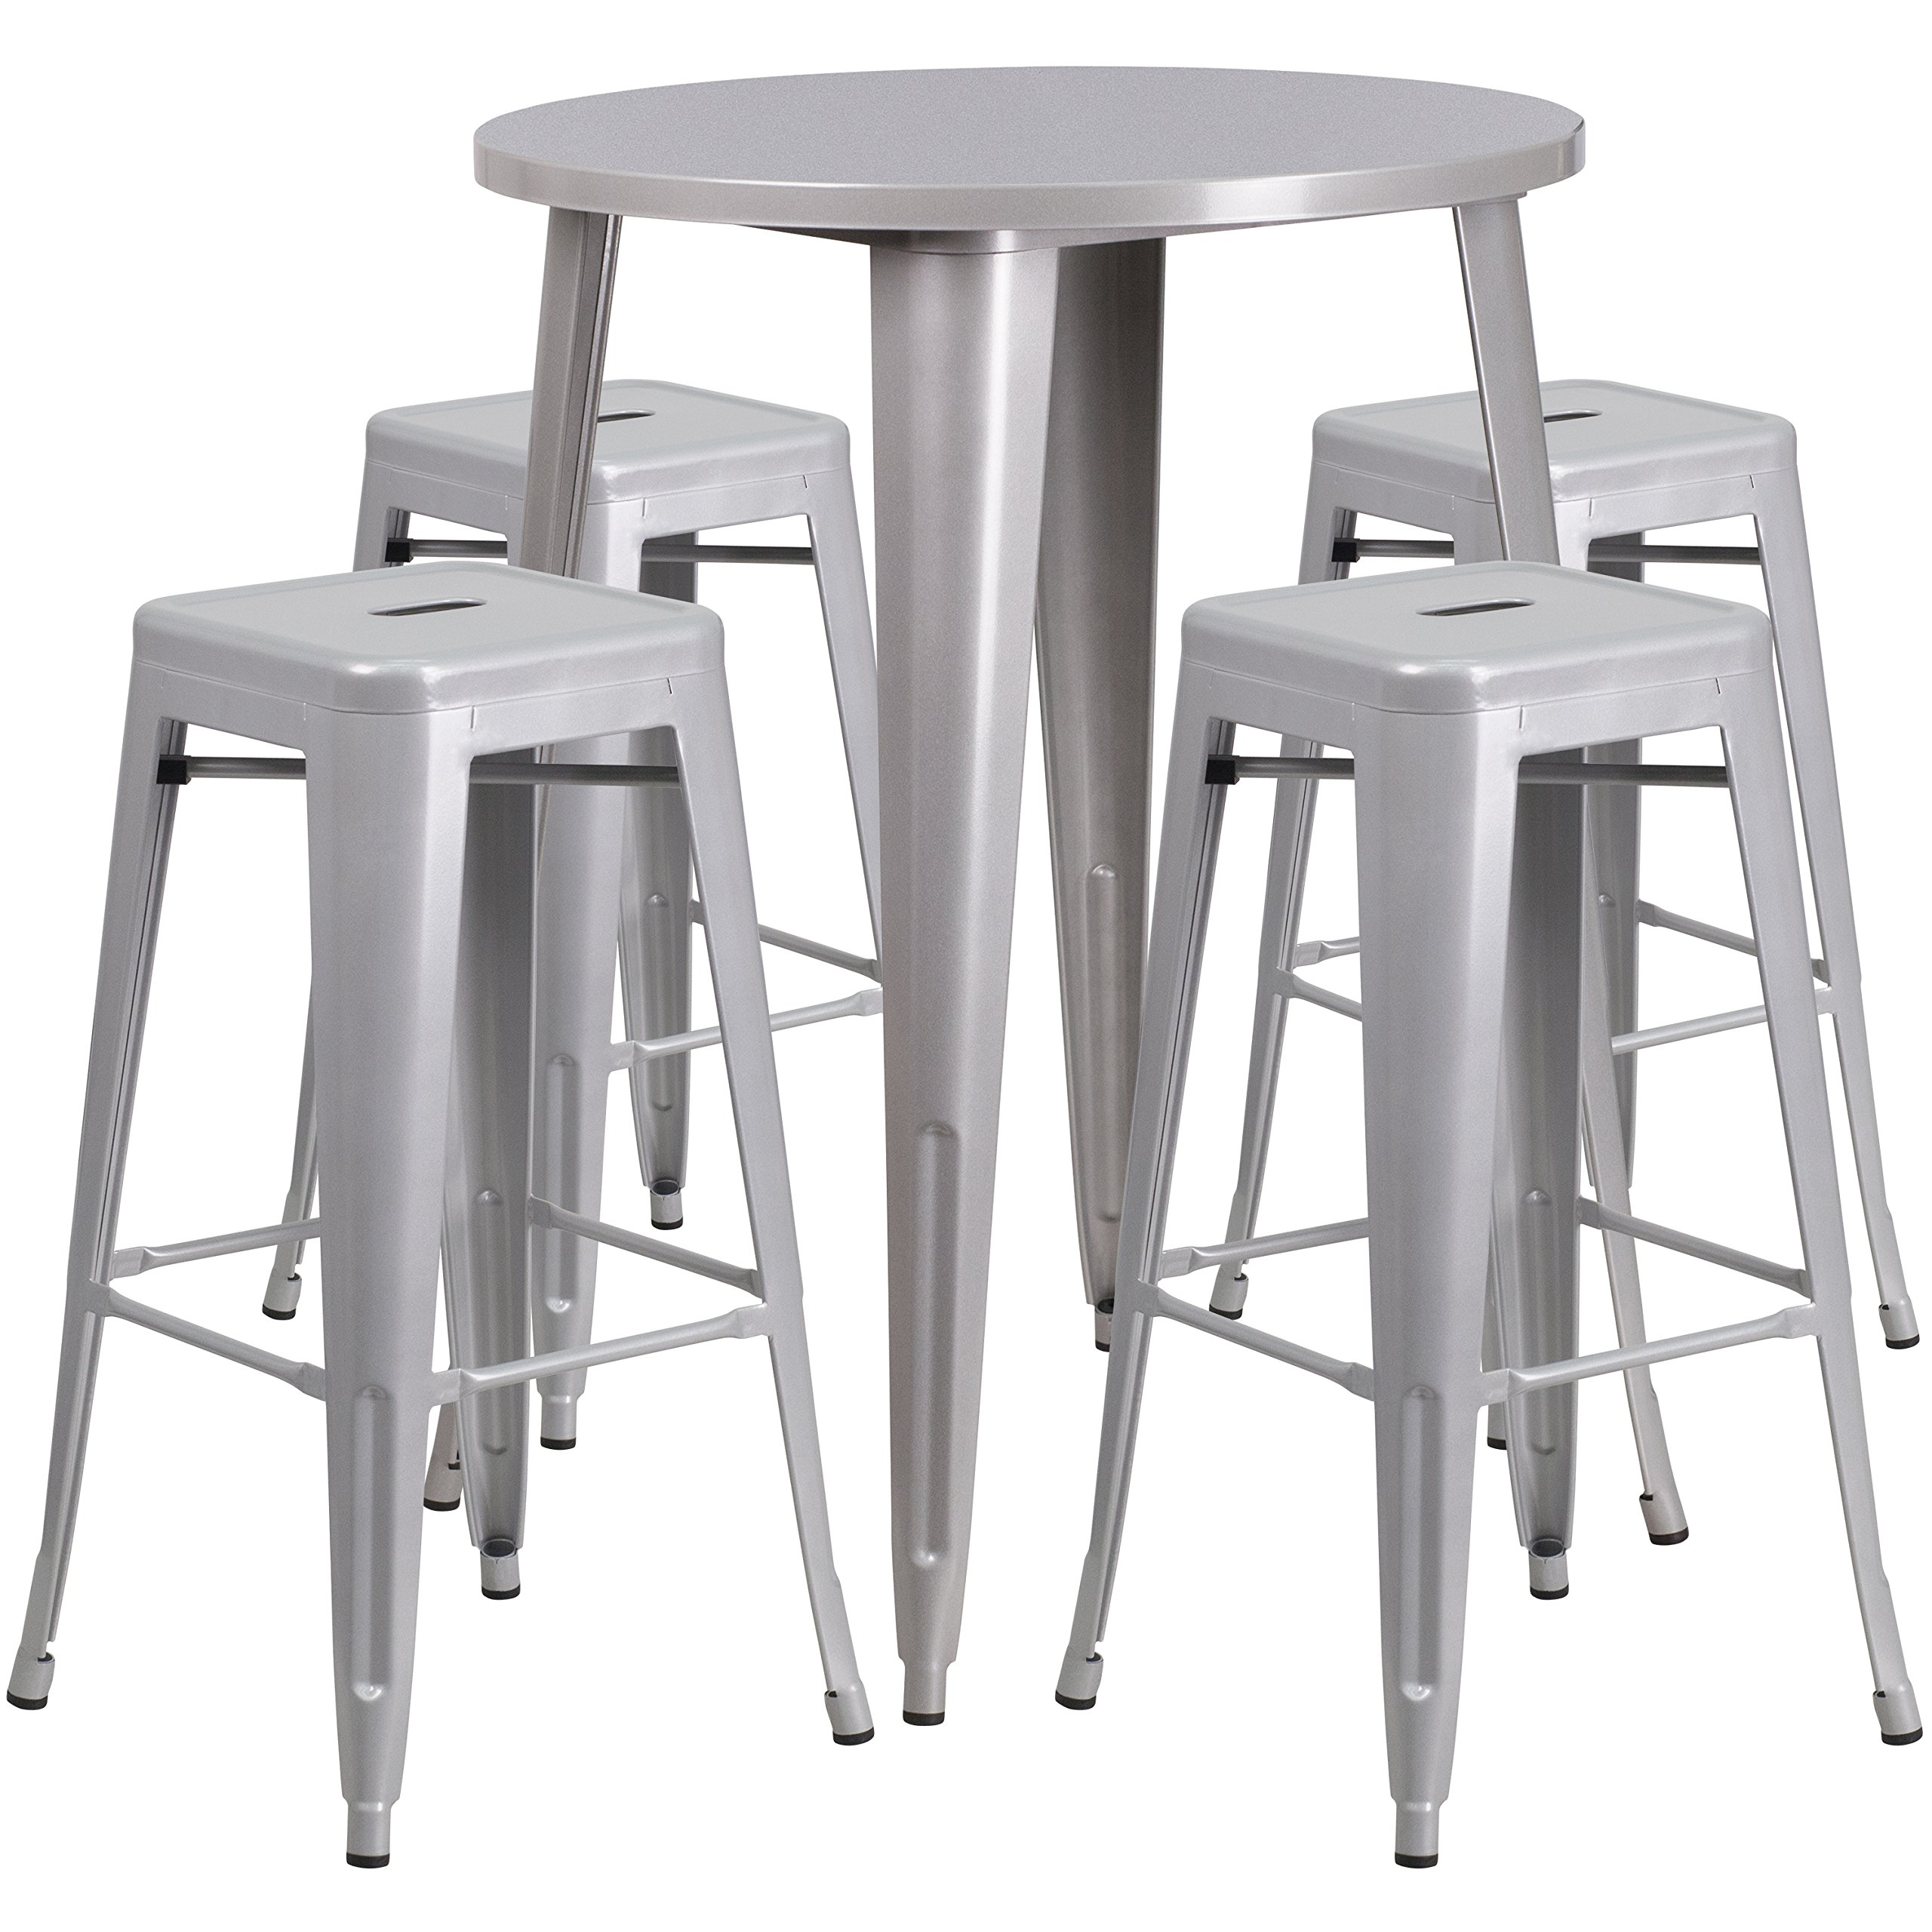 Flash Furniture 30'' Round Silver Metal Indoor-Outdoor Bar Table Set with 4 Square Seat Backless Stools